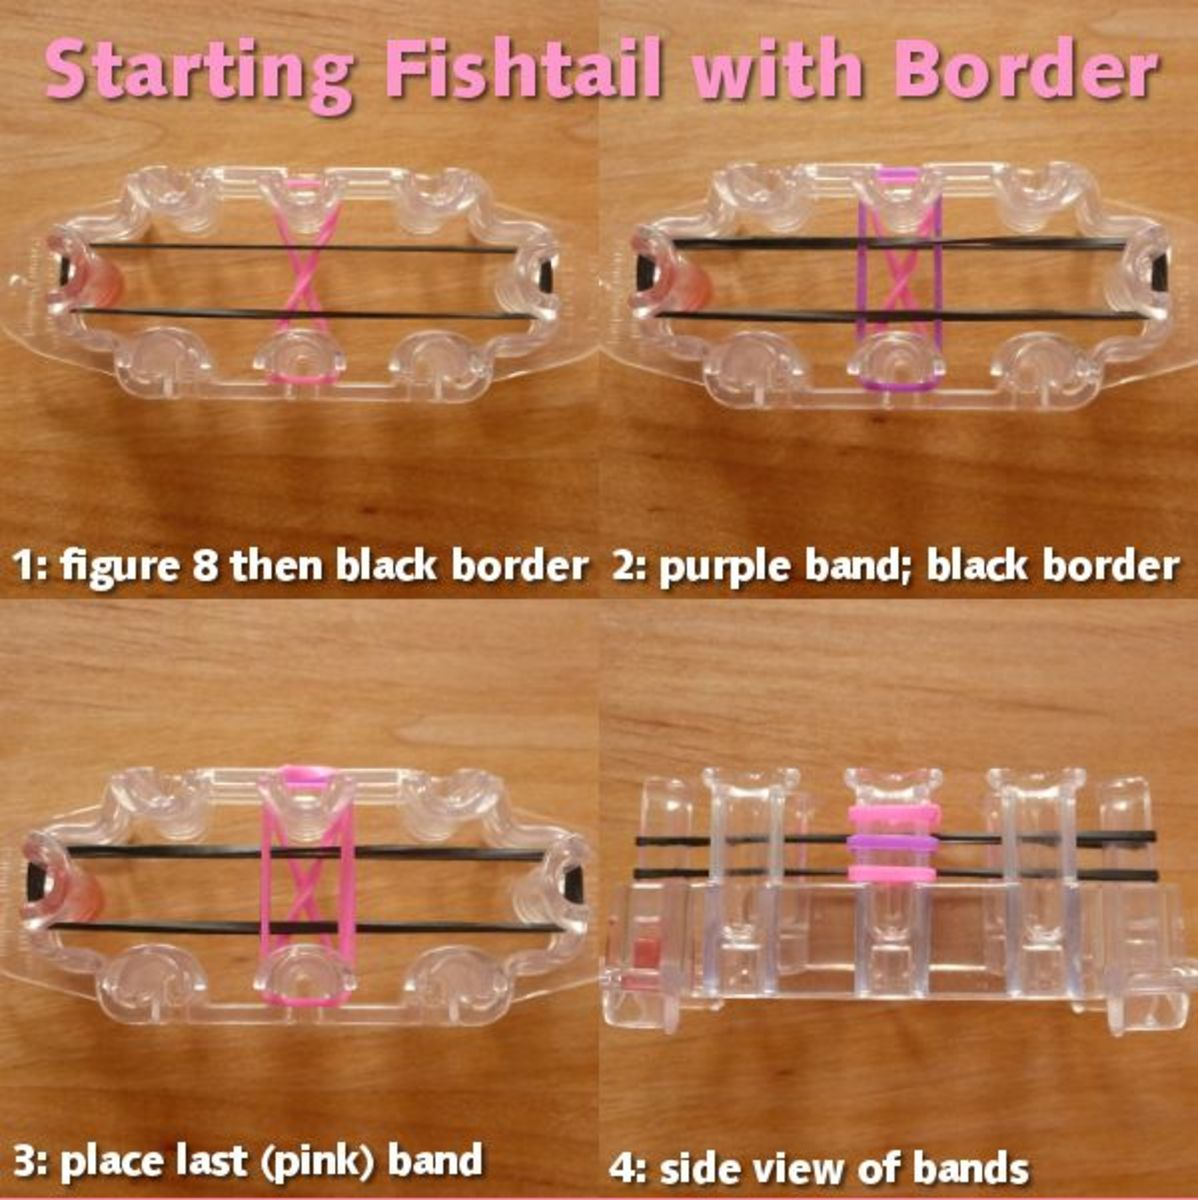 Starting guide for where bands go on fishtail with border